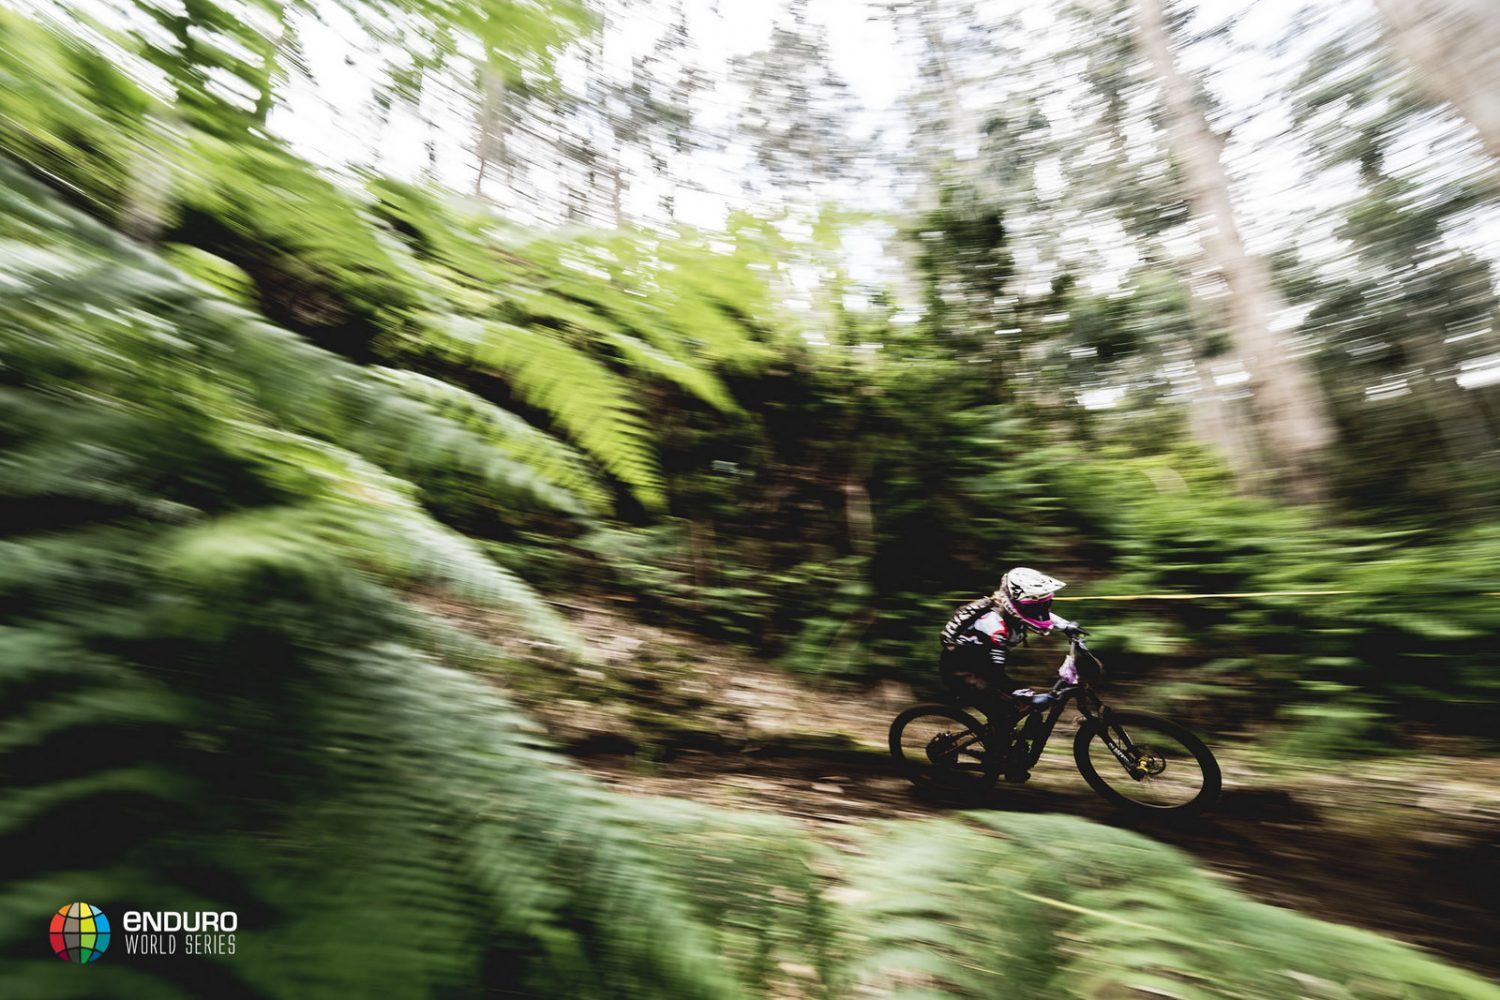 Photo courtesy of Enduro World Series.